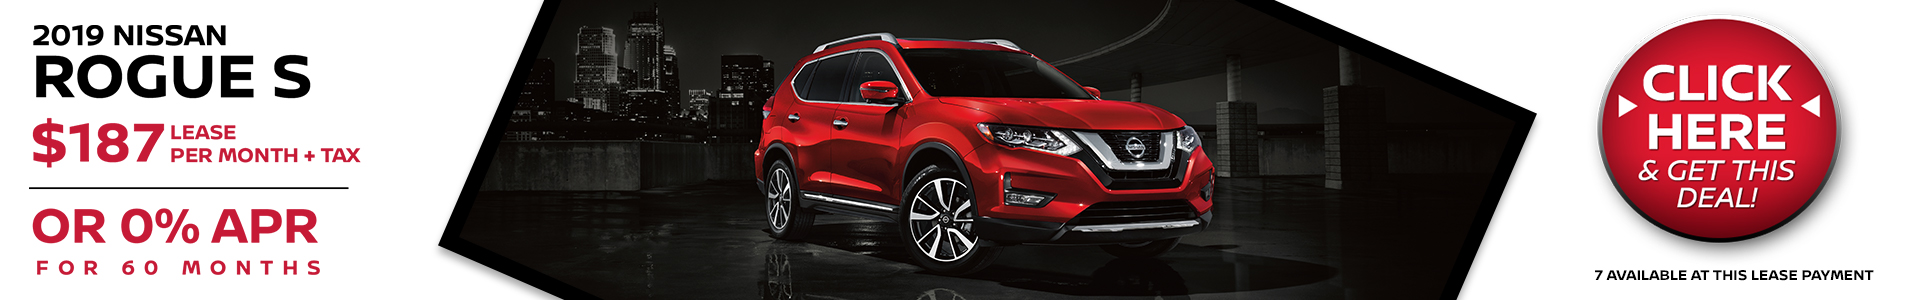 Mossy Nissan - Nissan Rogue $187 Lease